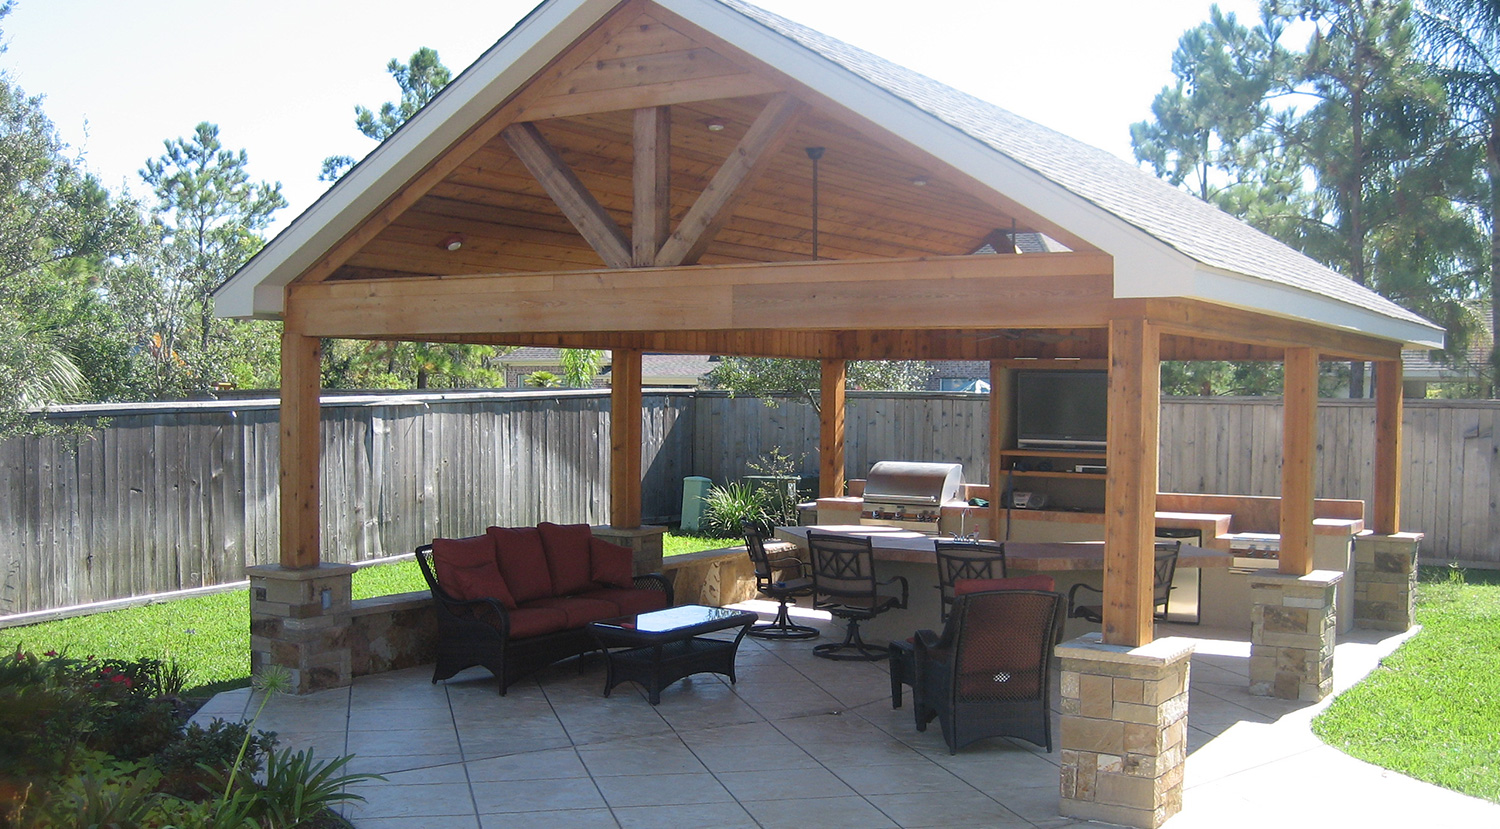 Outdoor Living Photos Houston | Outdoor Patio Photos Cypress on Covered Outdoor Living Area id=73990